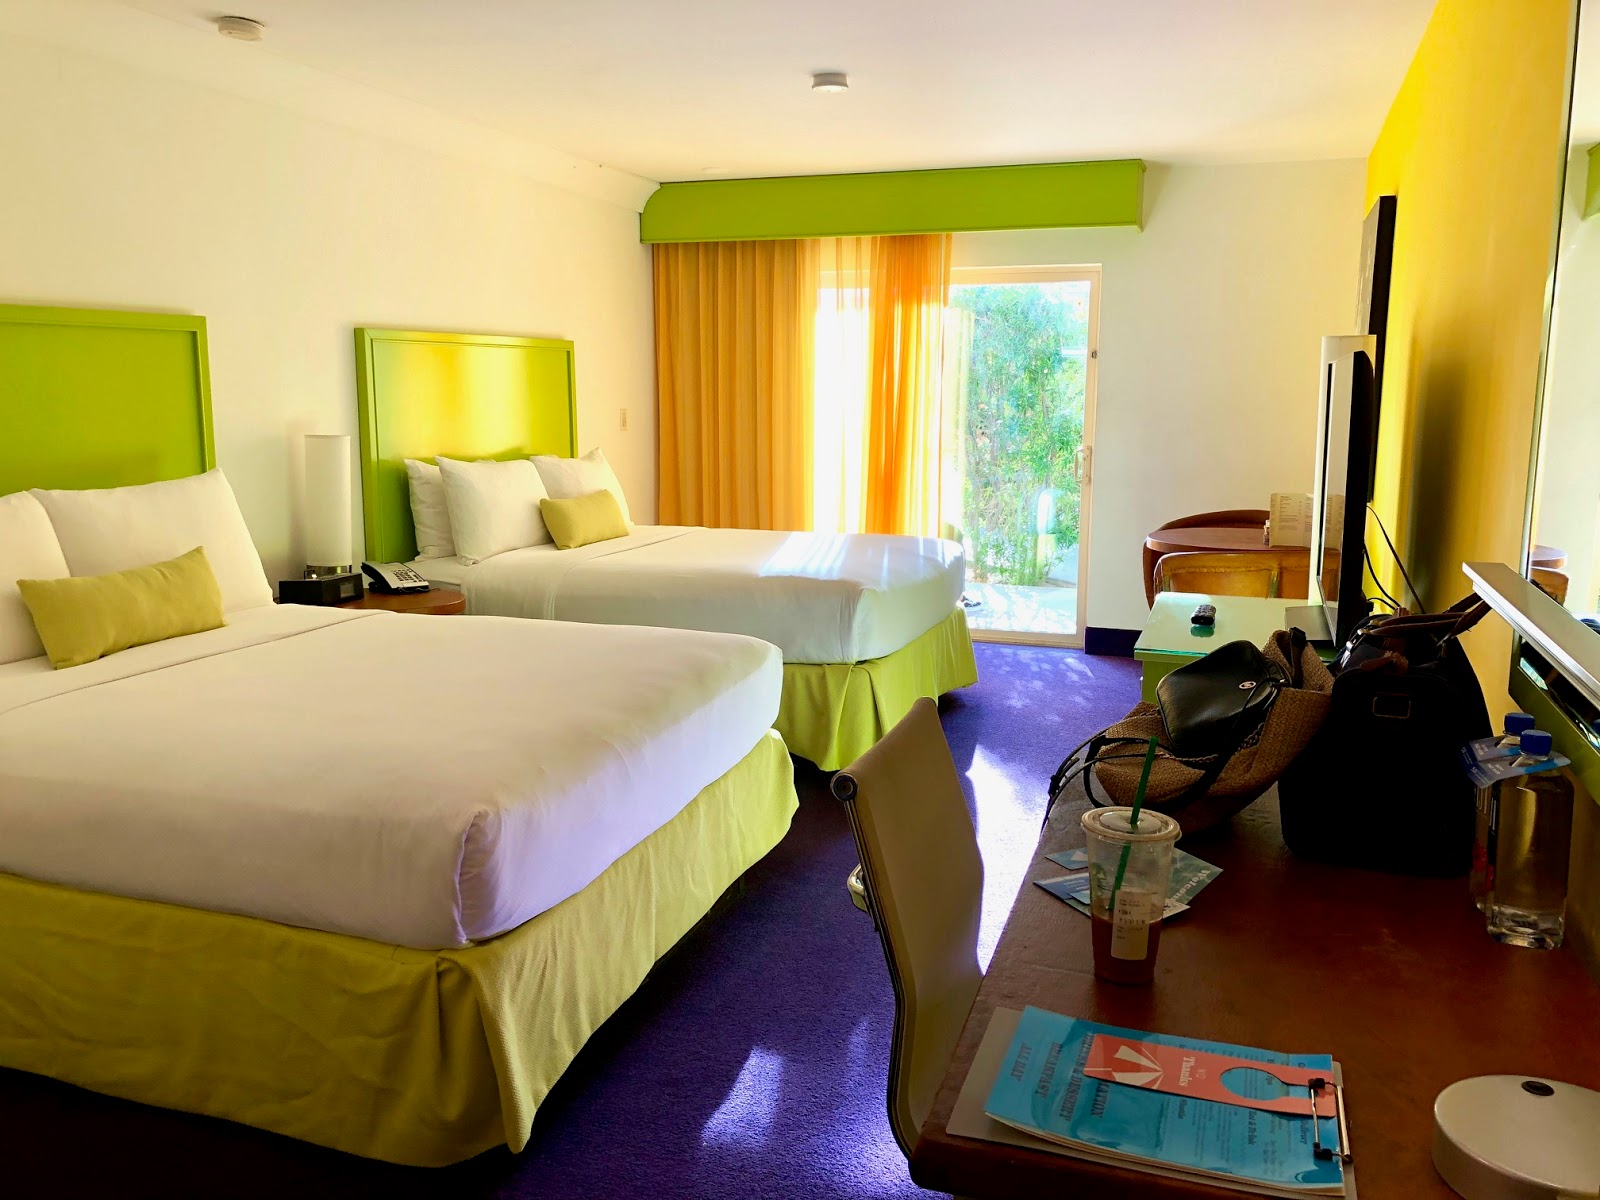 The Saguaro Palm Springs Hotel Room Review